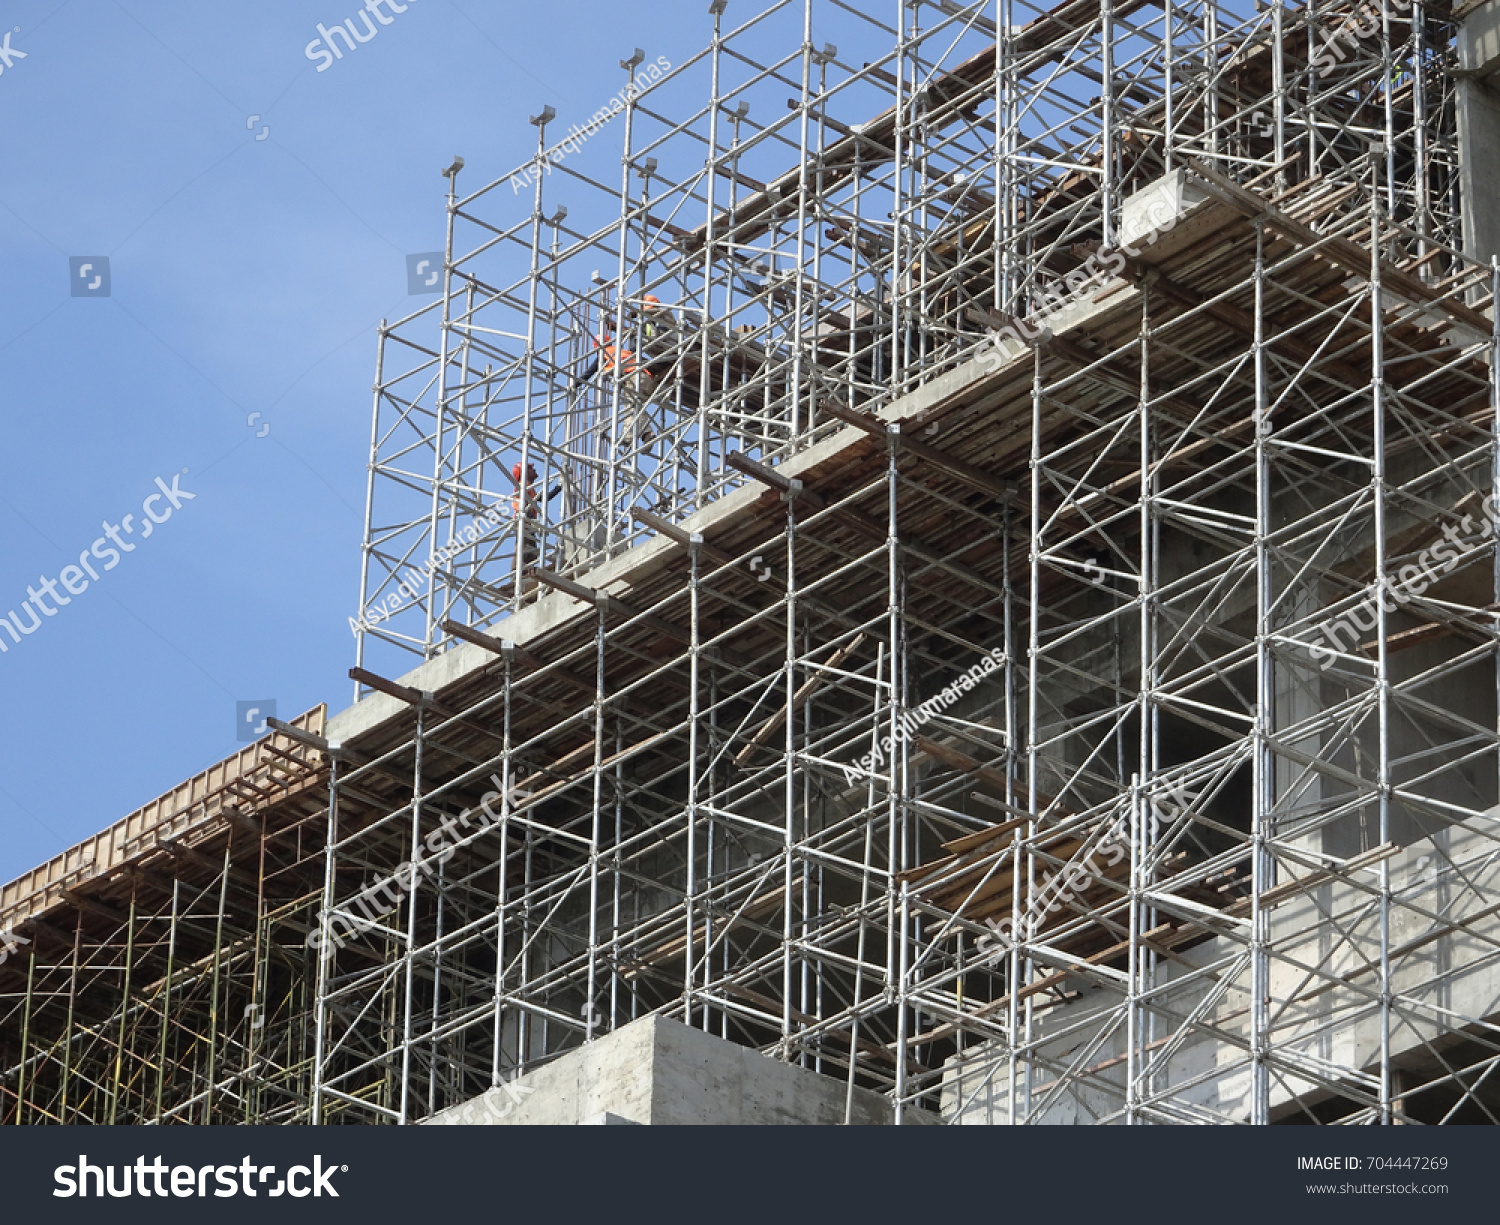 Temporary Construction Structures : Scaffolding used temporary structure support building